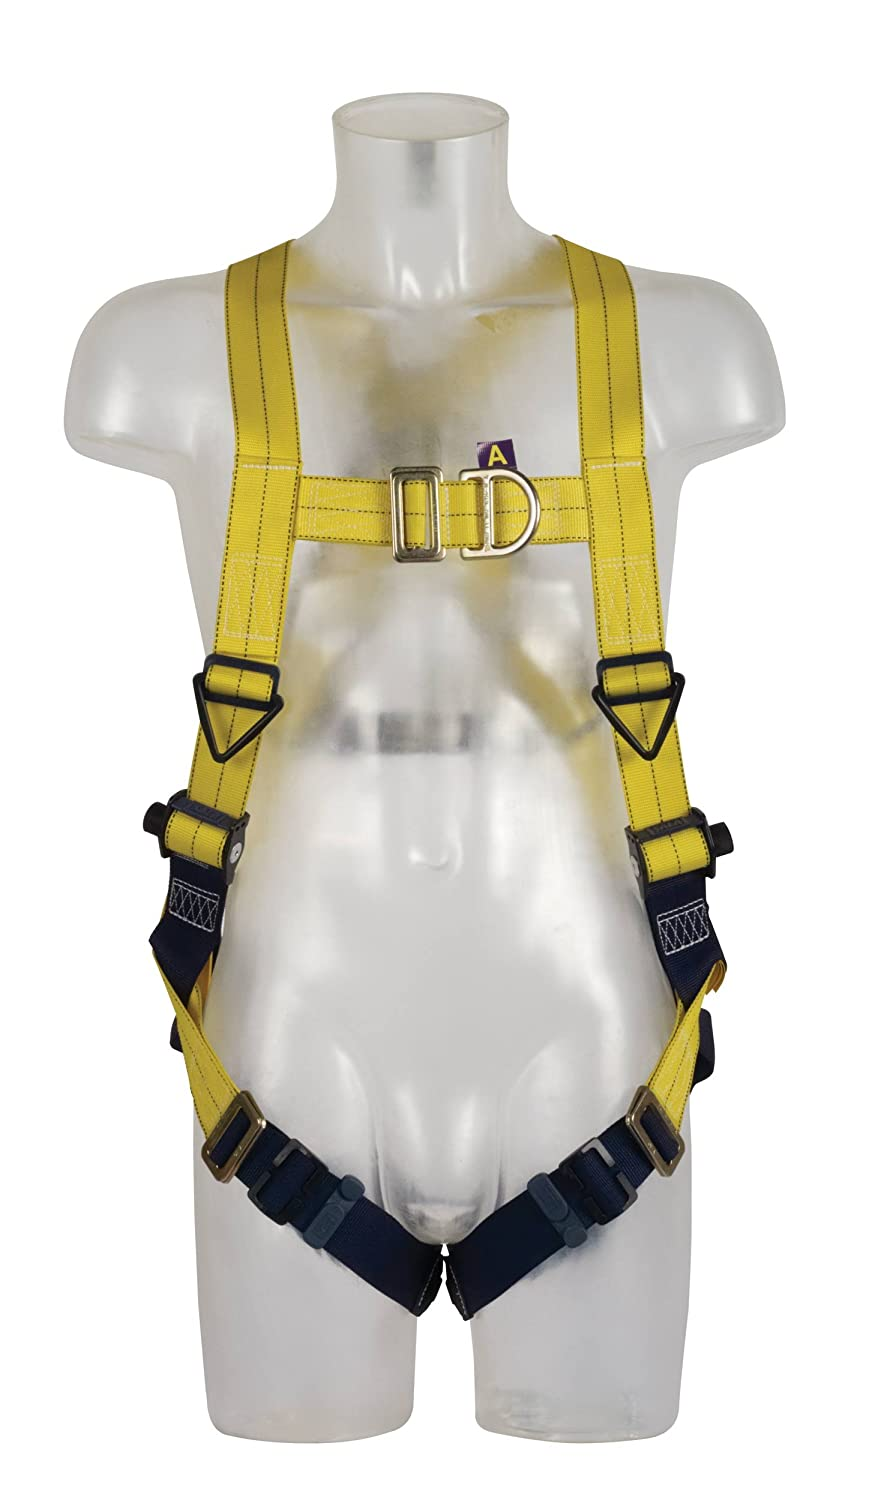 DBI SALA Delta Harness with Front And Rear Fall Arrest Attachment Points, Size: Universal Capital Safety SALA Delta 1112900 H' ness